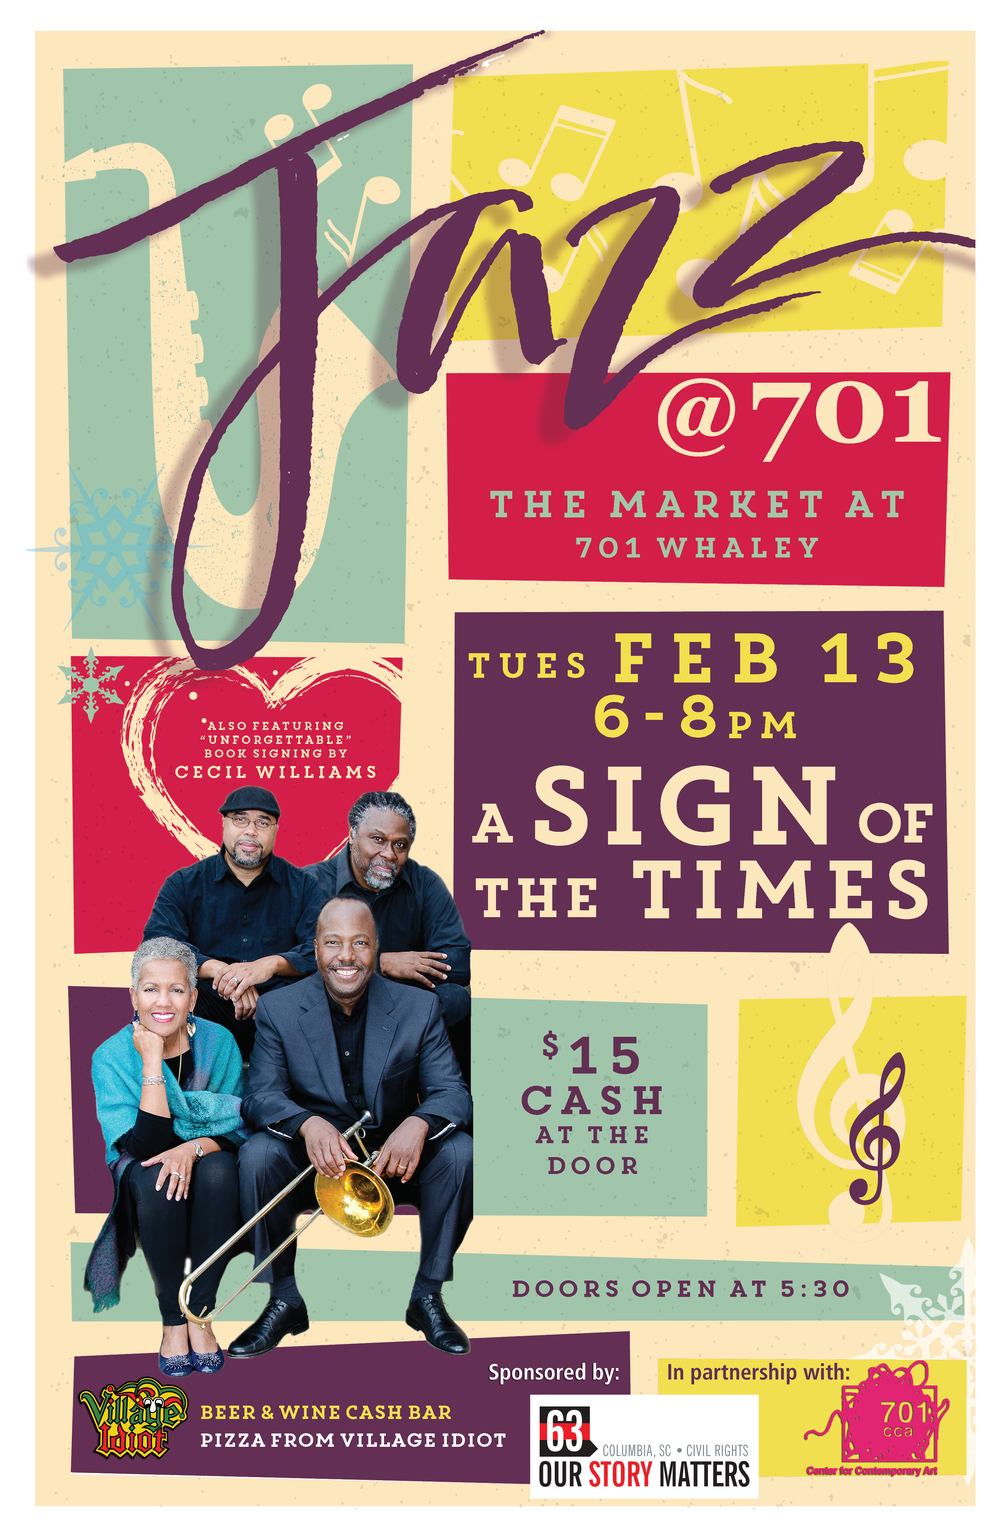 Jazzat701_Feb2018_11x17poster (1).png